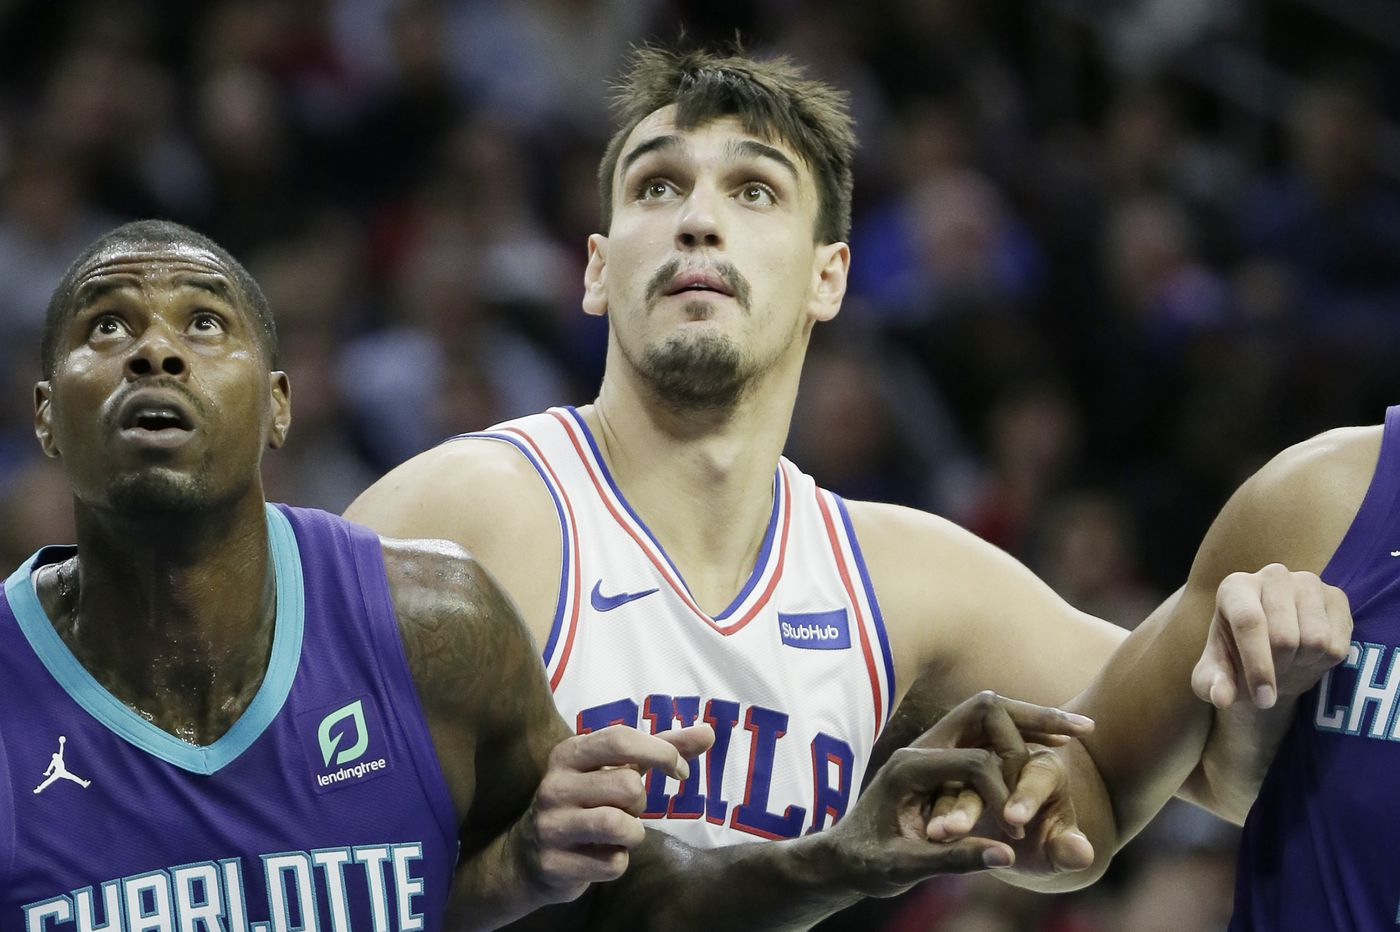 Dario Saric's early season slump is even worse than usual, but the Sixers aren't worried